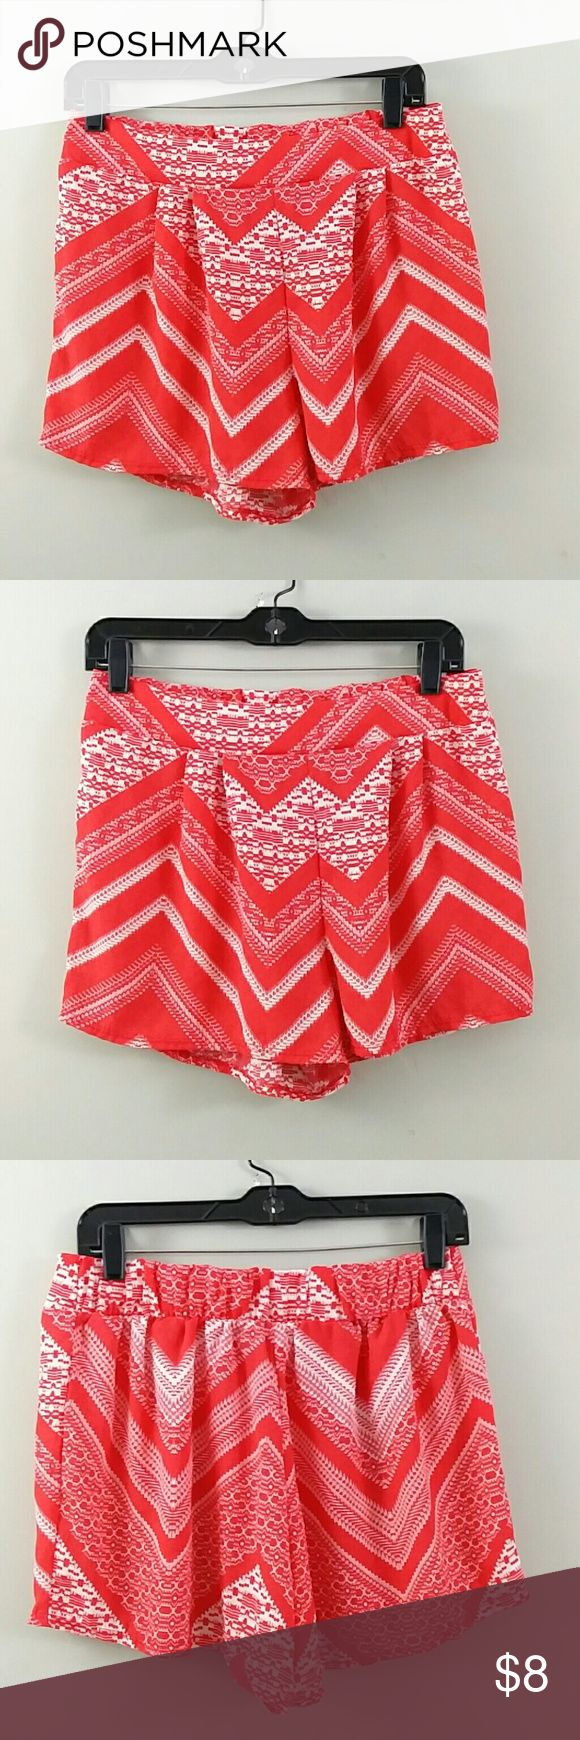 "Body Central Women's L Orange Chevron Short You are looking at a pre-owned women's Body Central Made in the USA orange/coral short, 109% polyester, size Large Length~12"" Inseam~2.5"" Waist~28"" Elastic Please look at pictures and ask questions before buying. Thanks for looking. Body Central Shorts"